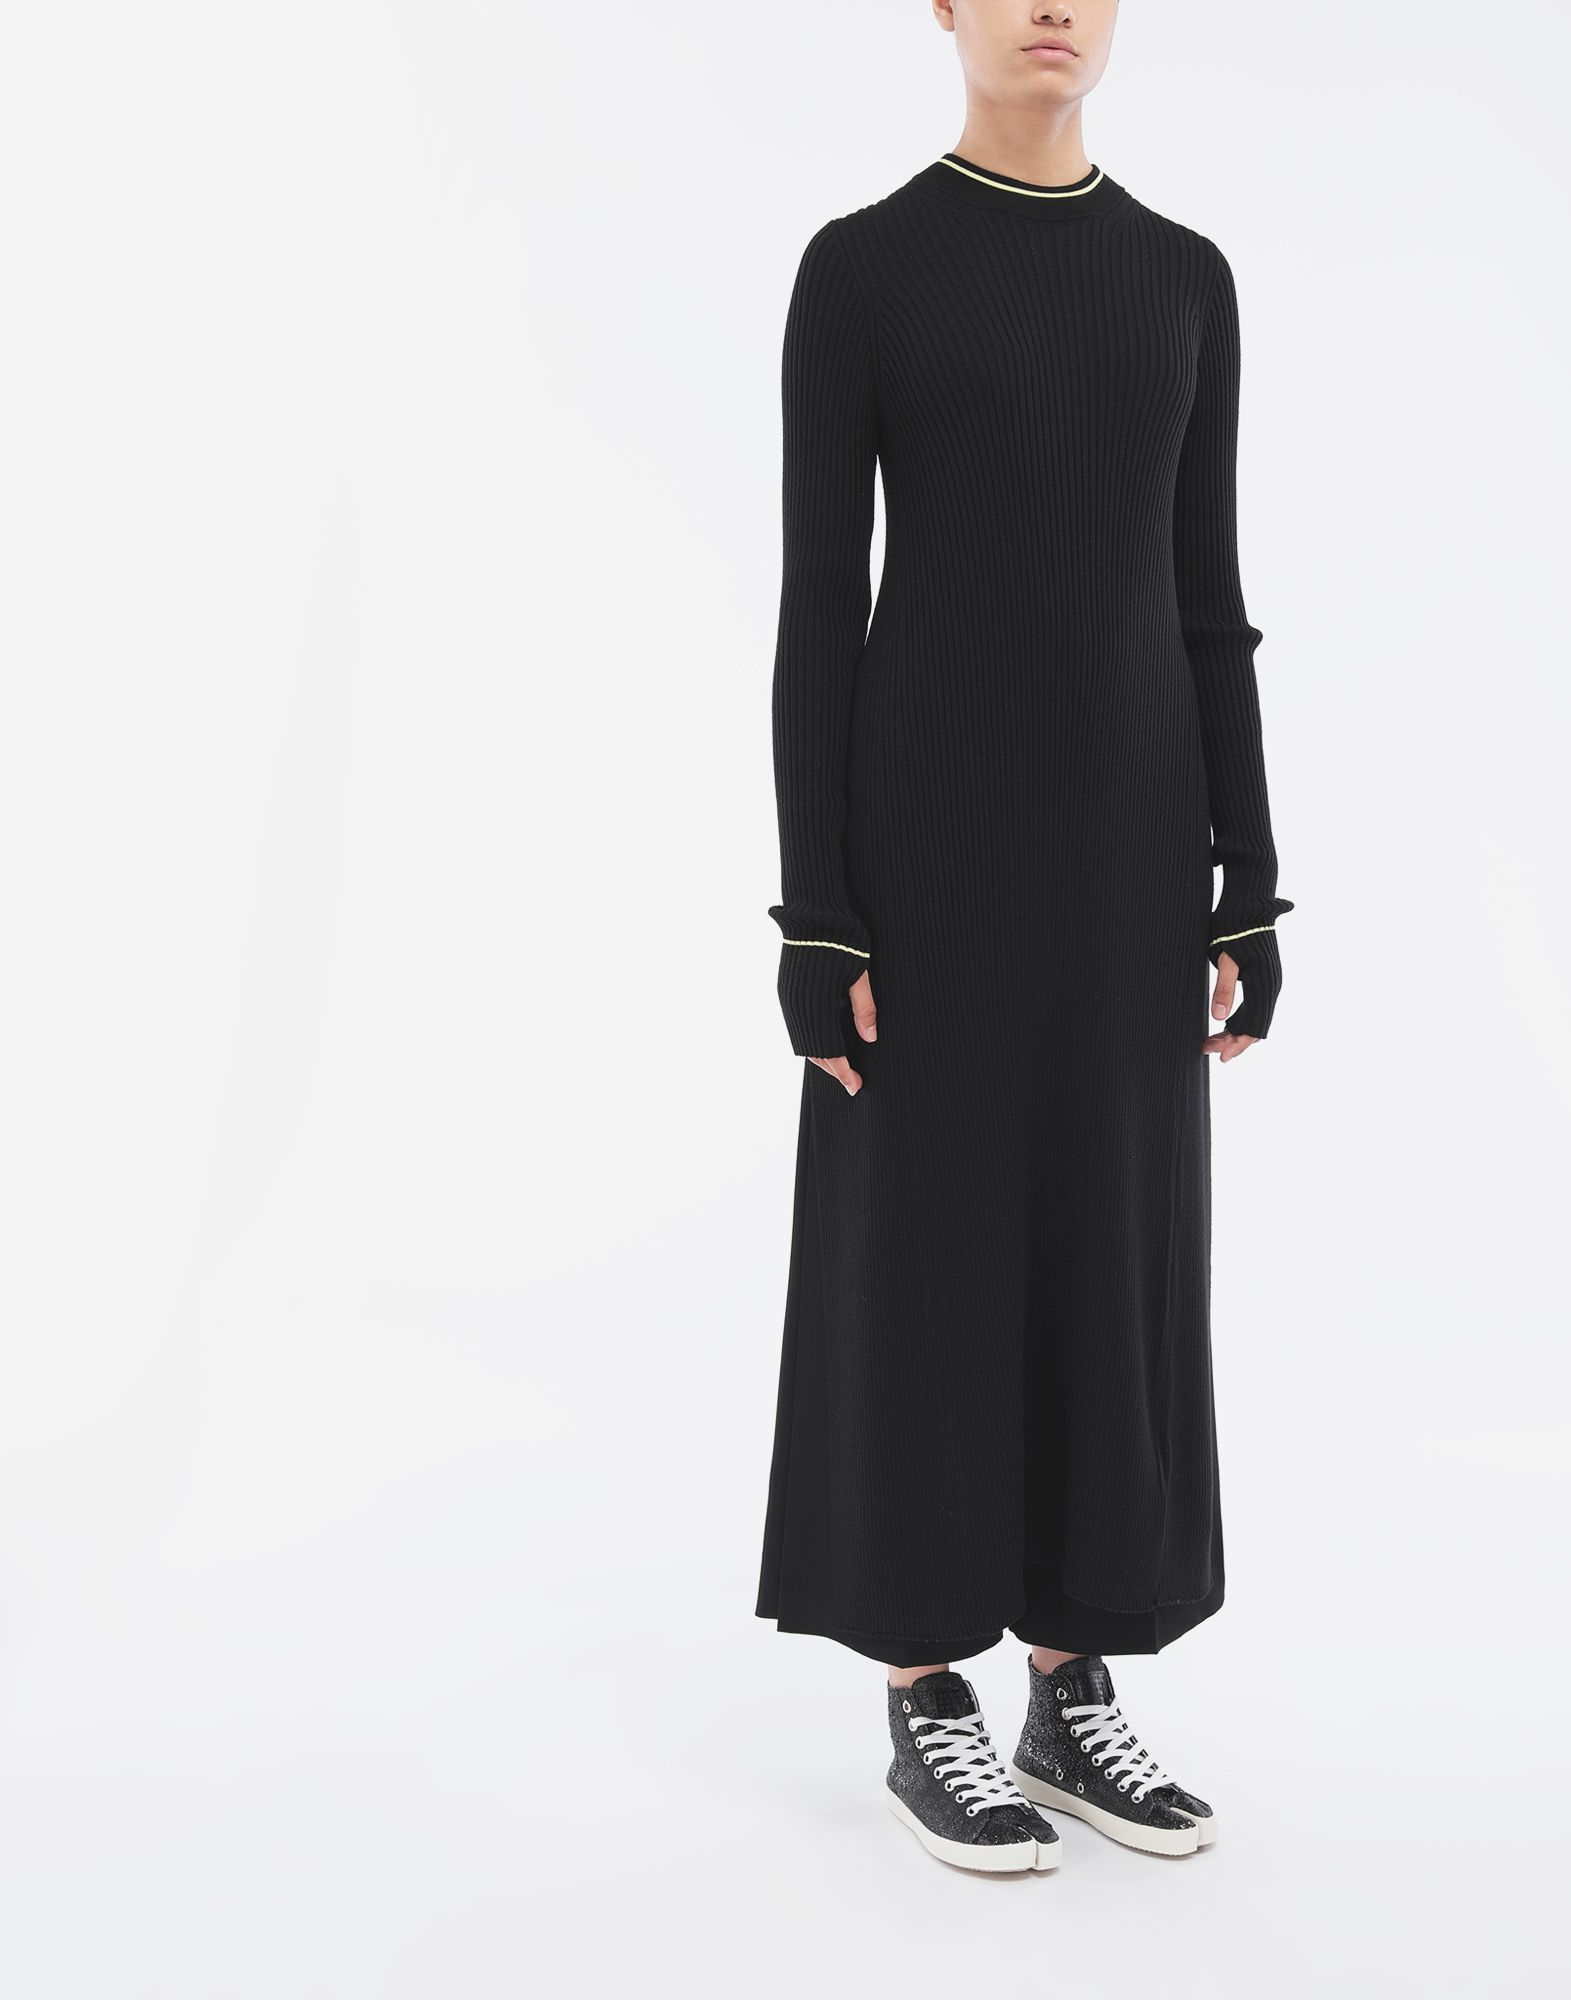 MAISON MARGIELA Open-back long top 3/4 length dress Woman r